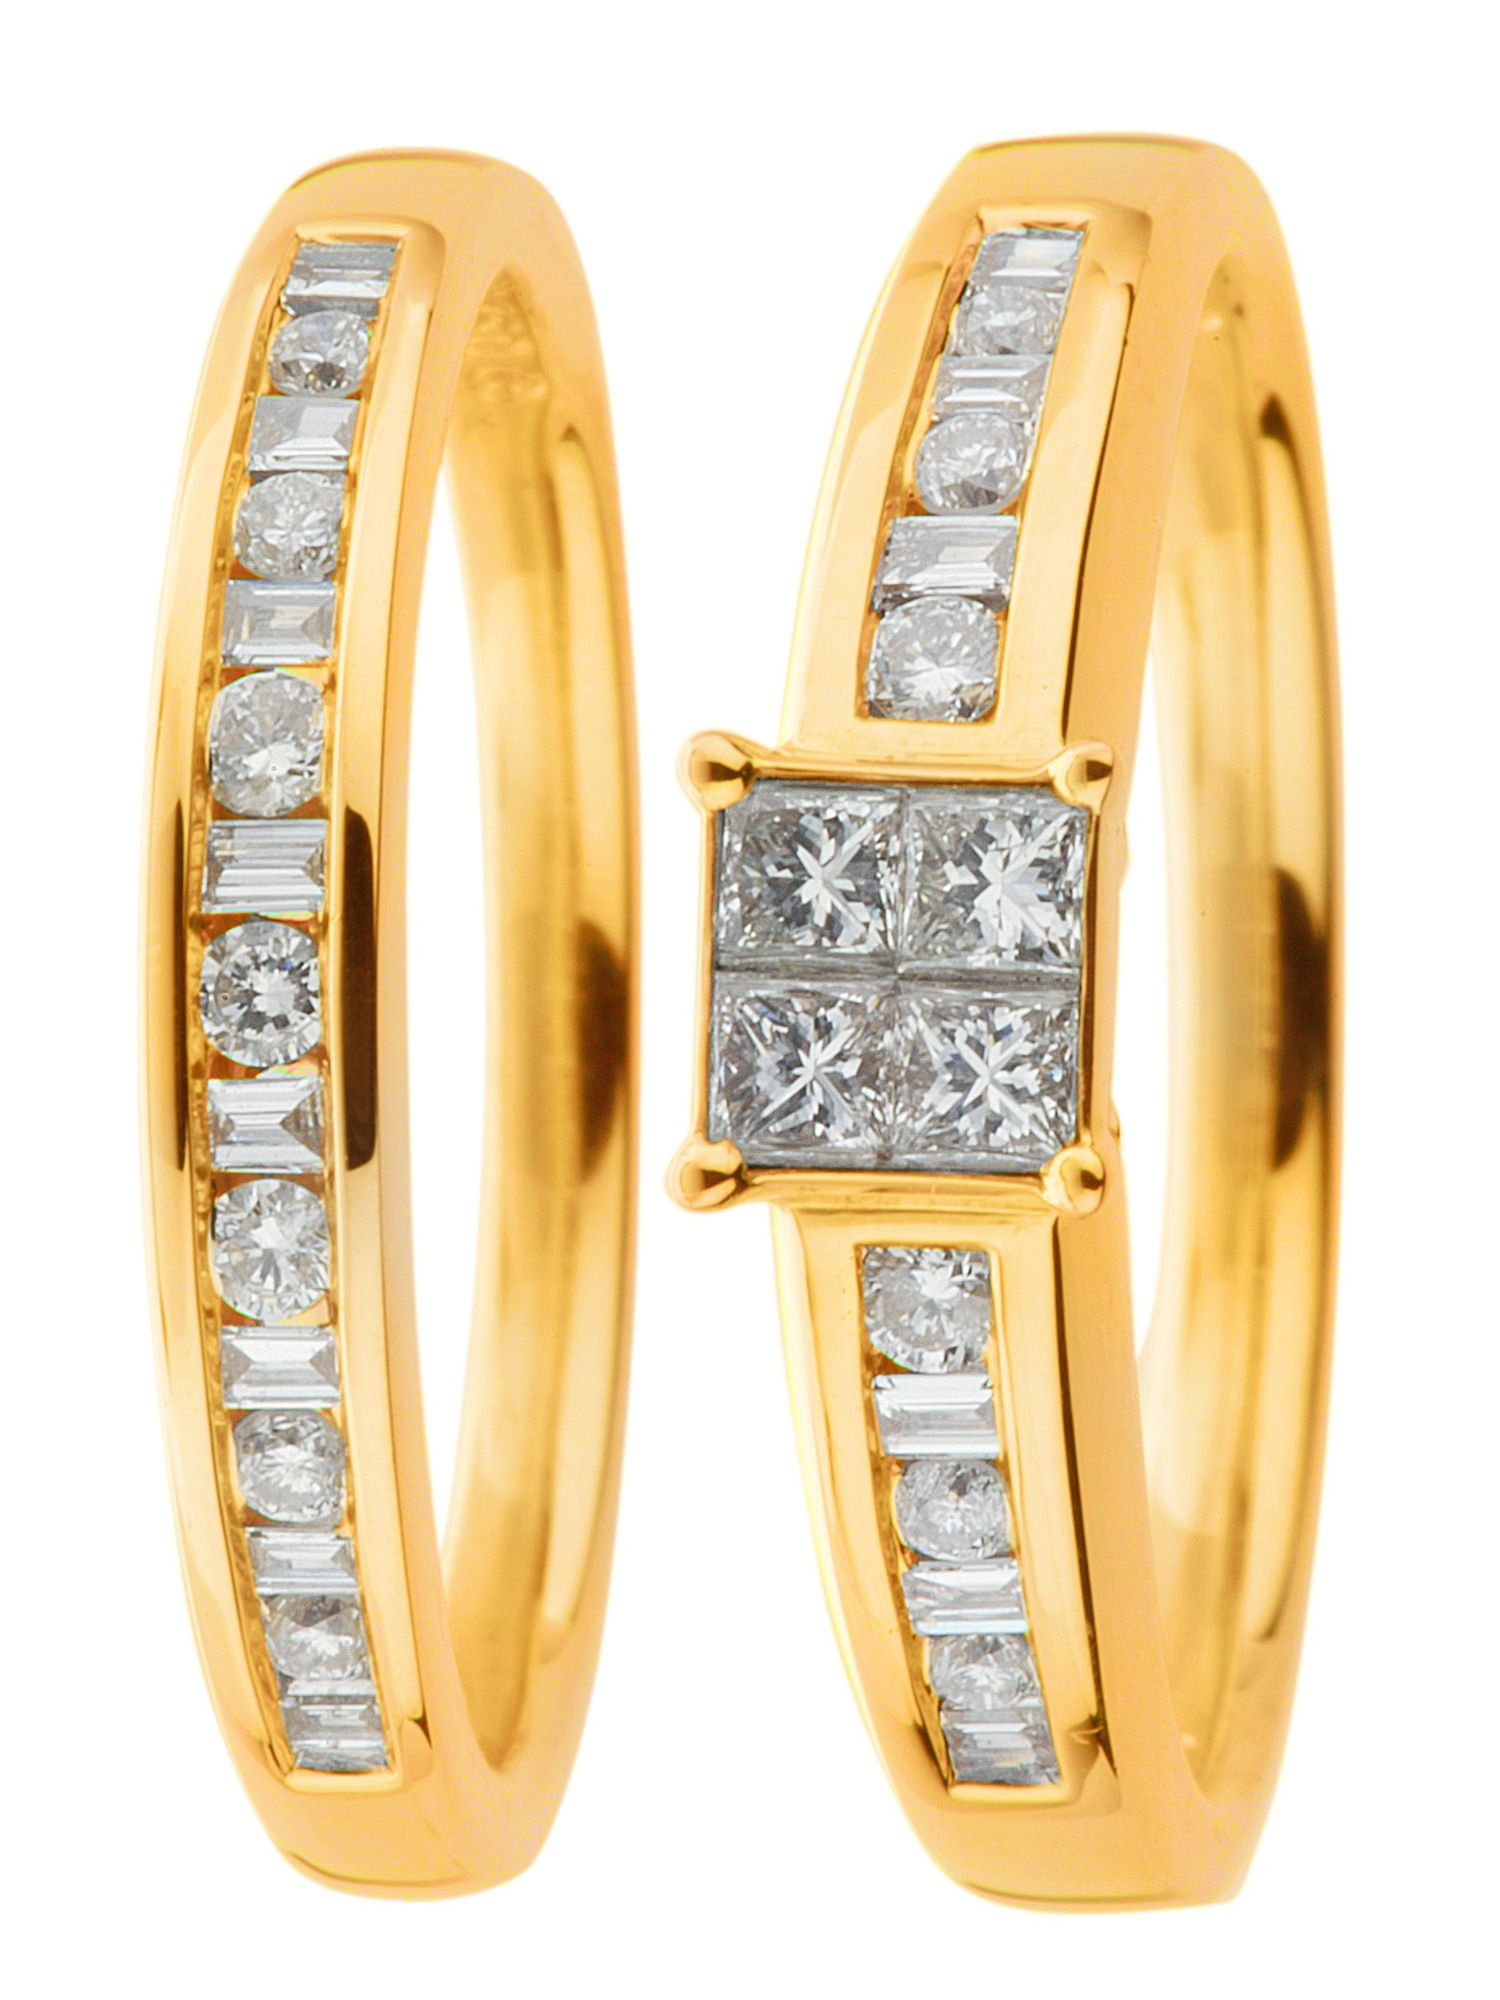 18ct gold 0.50ct, i1 clarity diamond wedding set